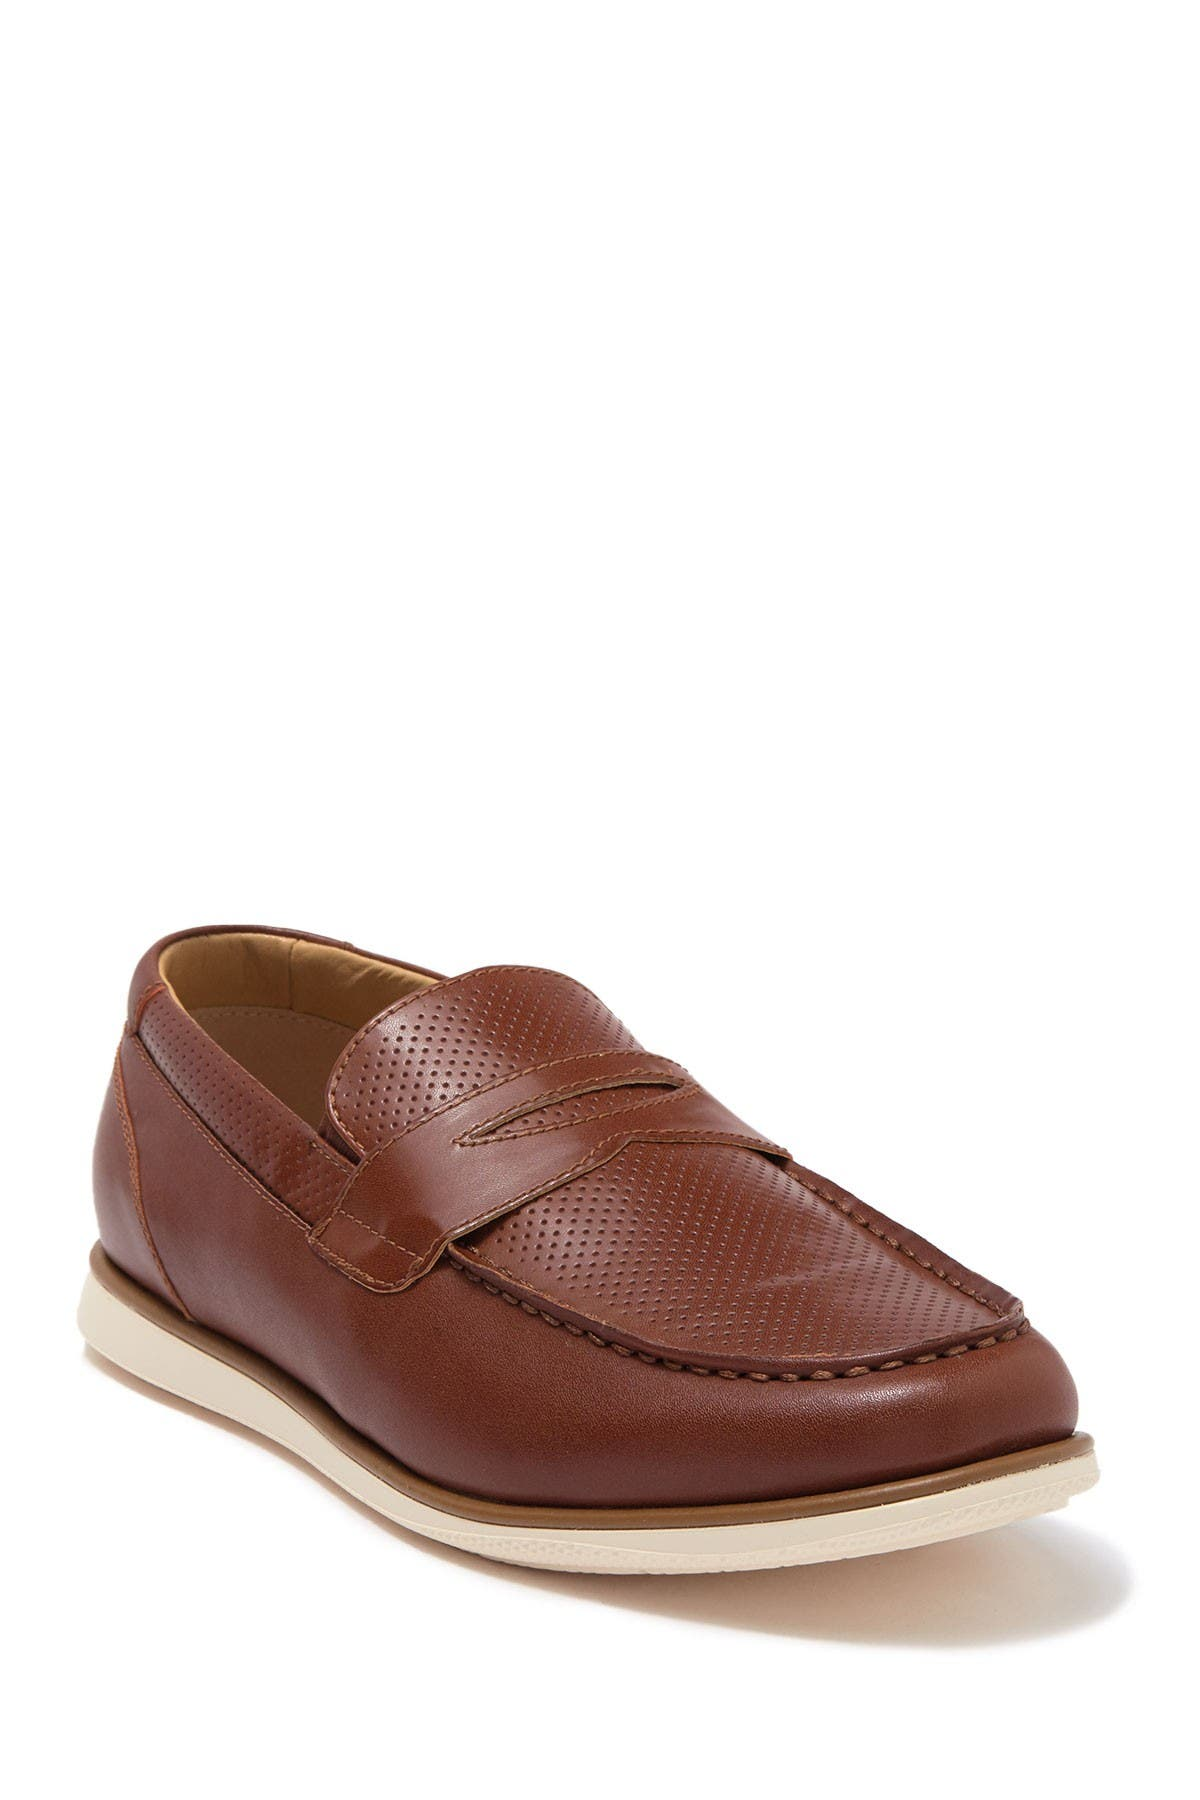 Image of WALLIN & BROS Taylor Penny Loafer